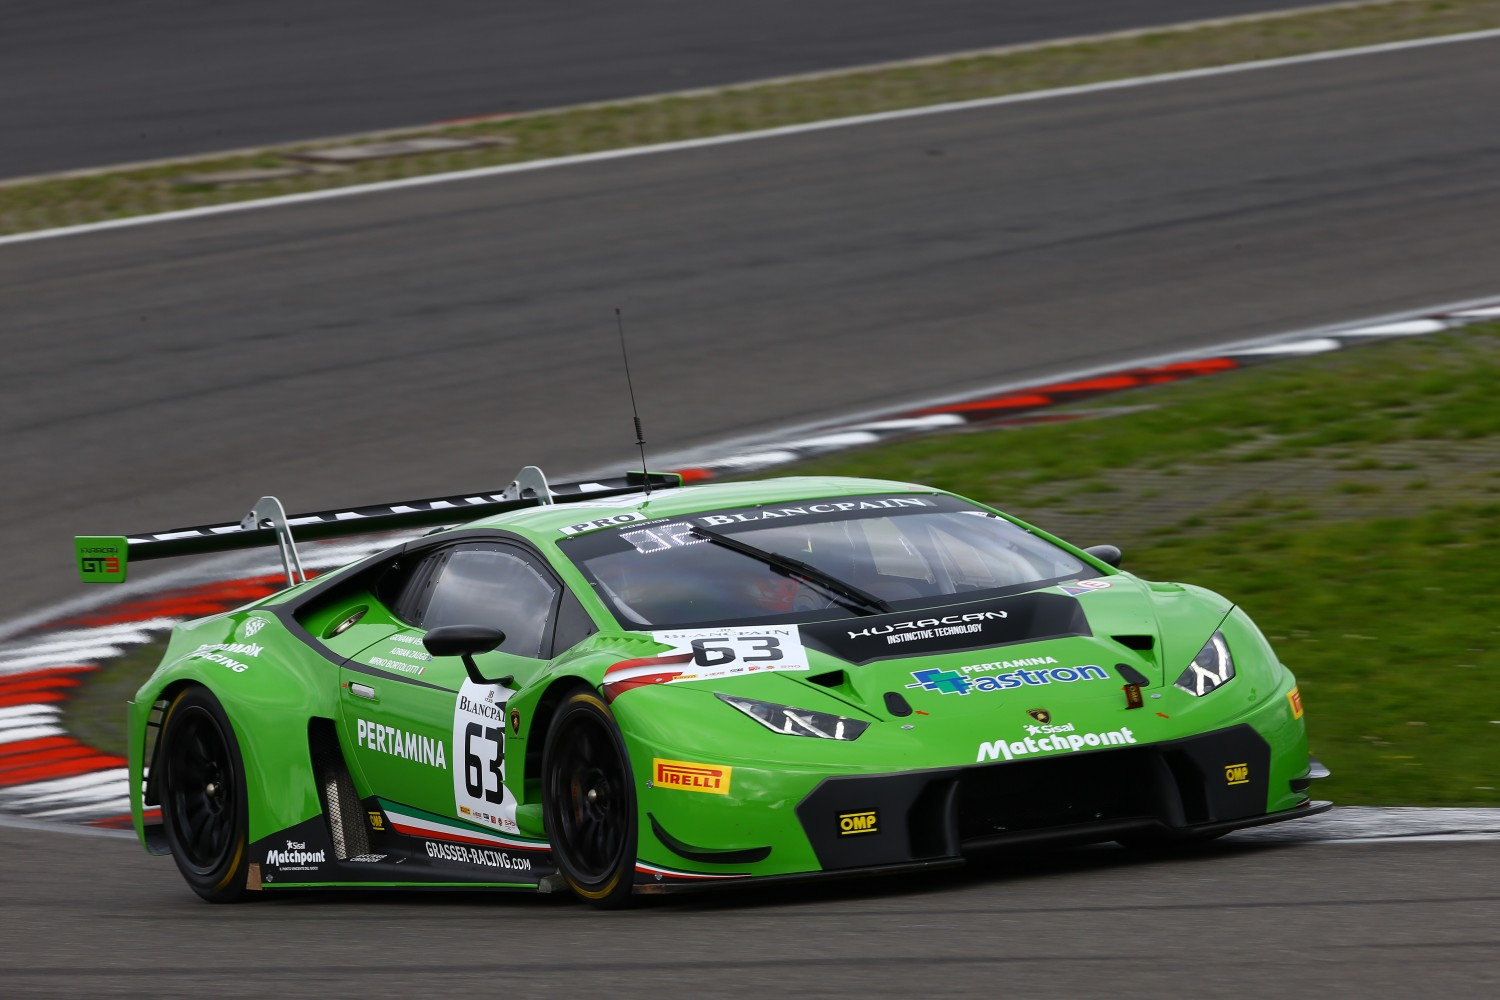 Mirko Bortolotti puts Lamborghini on pole for season finale